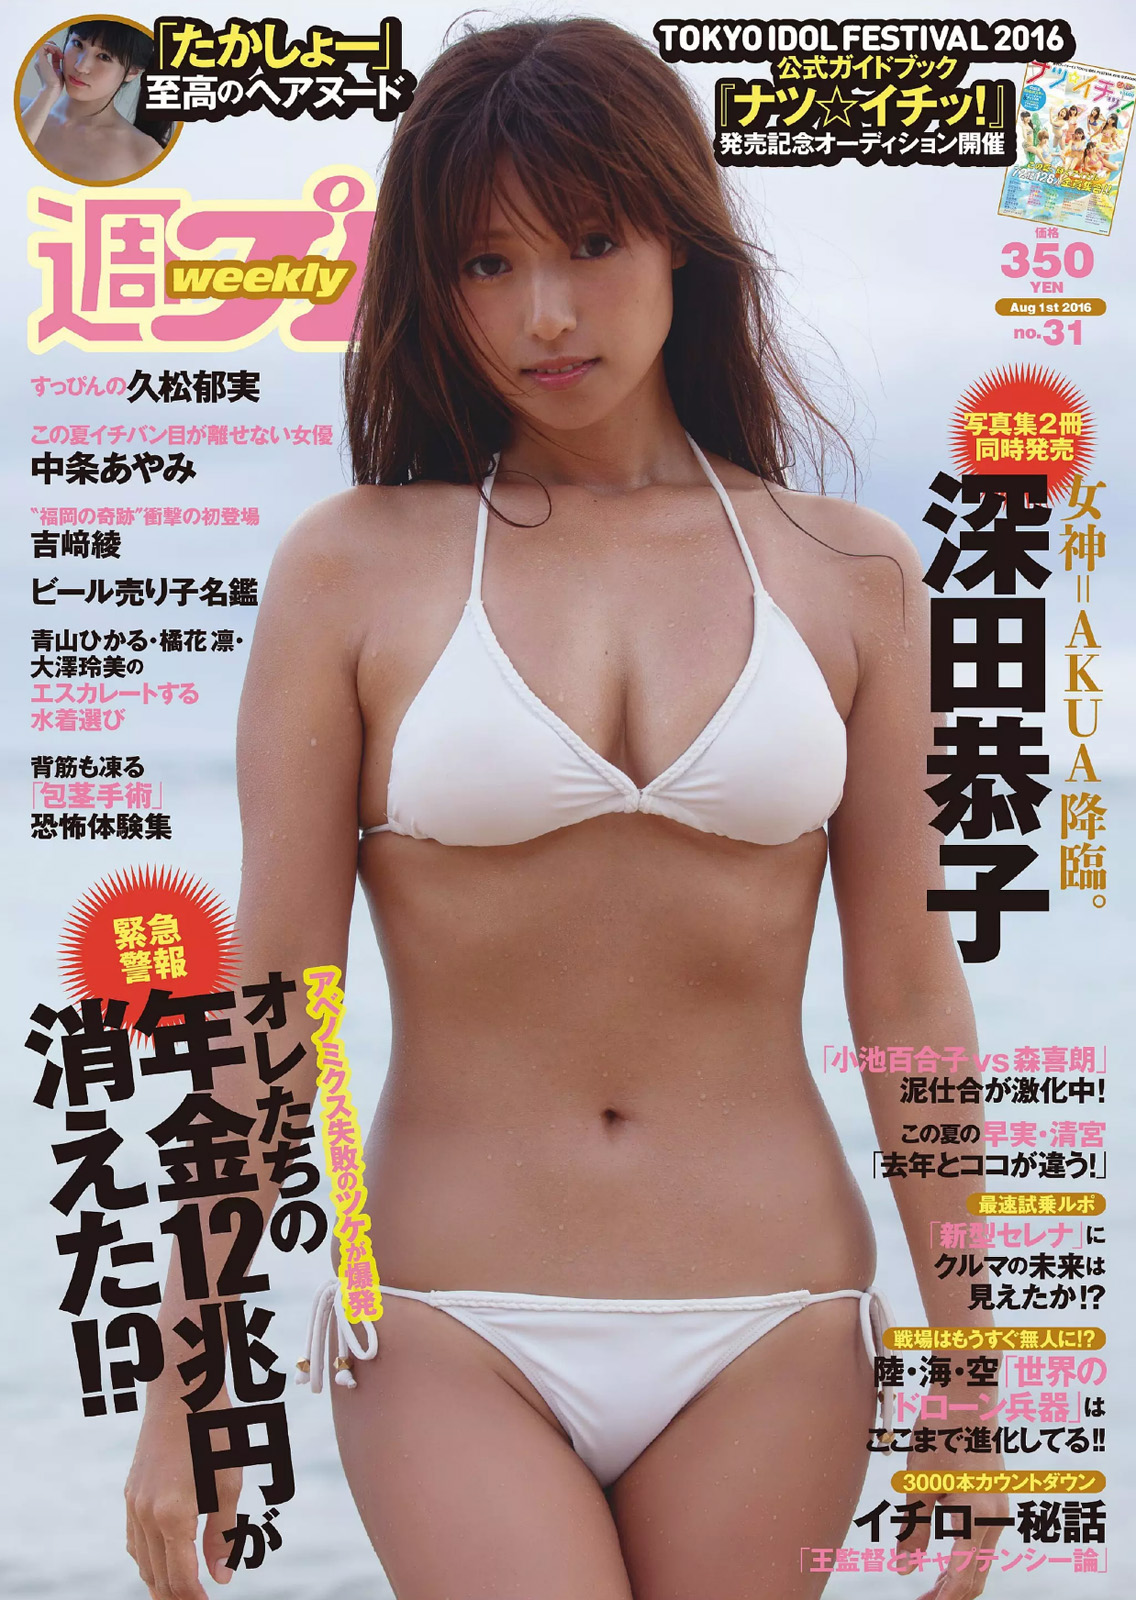 20170421.0444.17 Weekly Playboy (2016.31) 001 (JPOP.ru).jpg